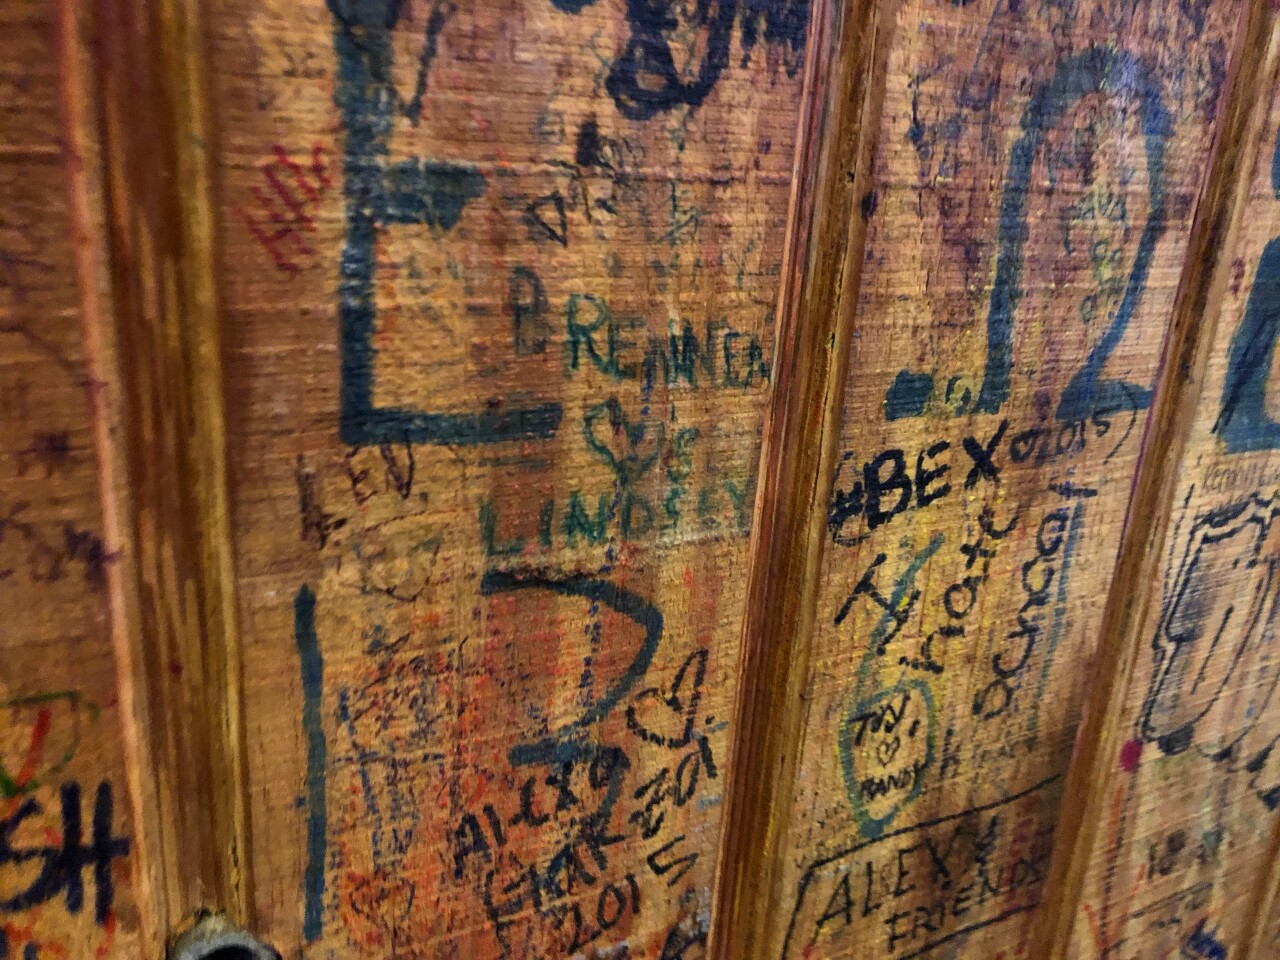 Graffiti covers every inch of the walls at the Brass Ring Pub in North Palm Beach.